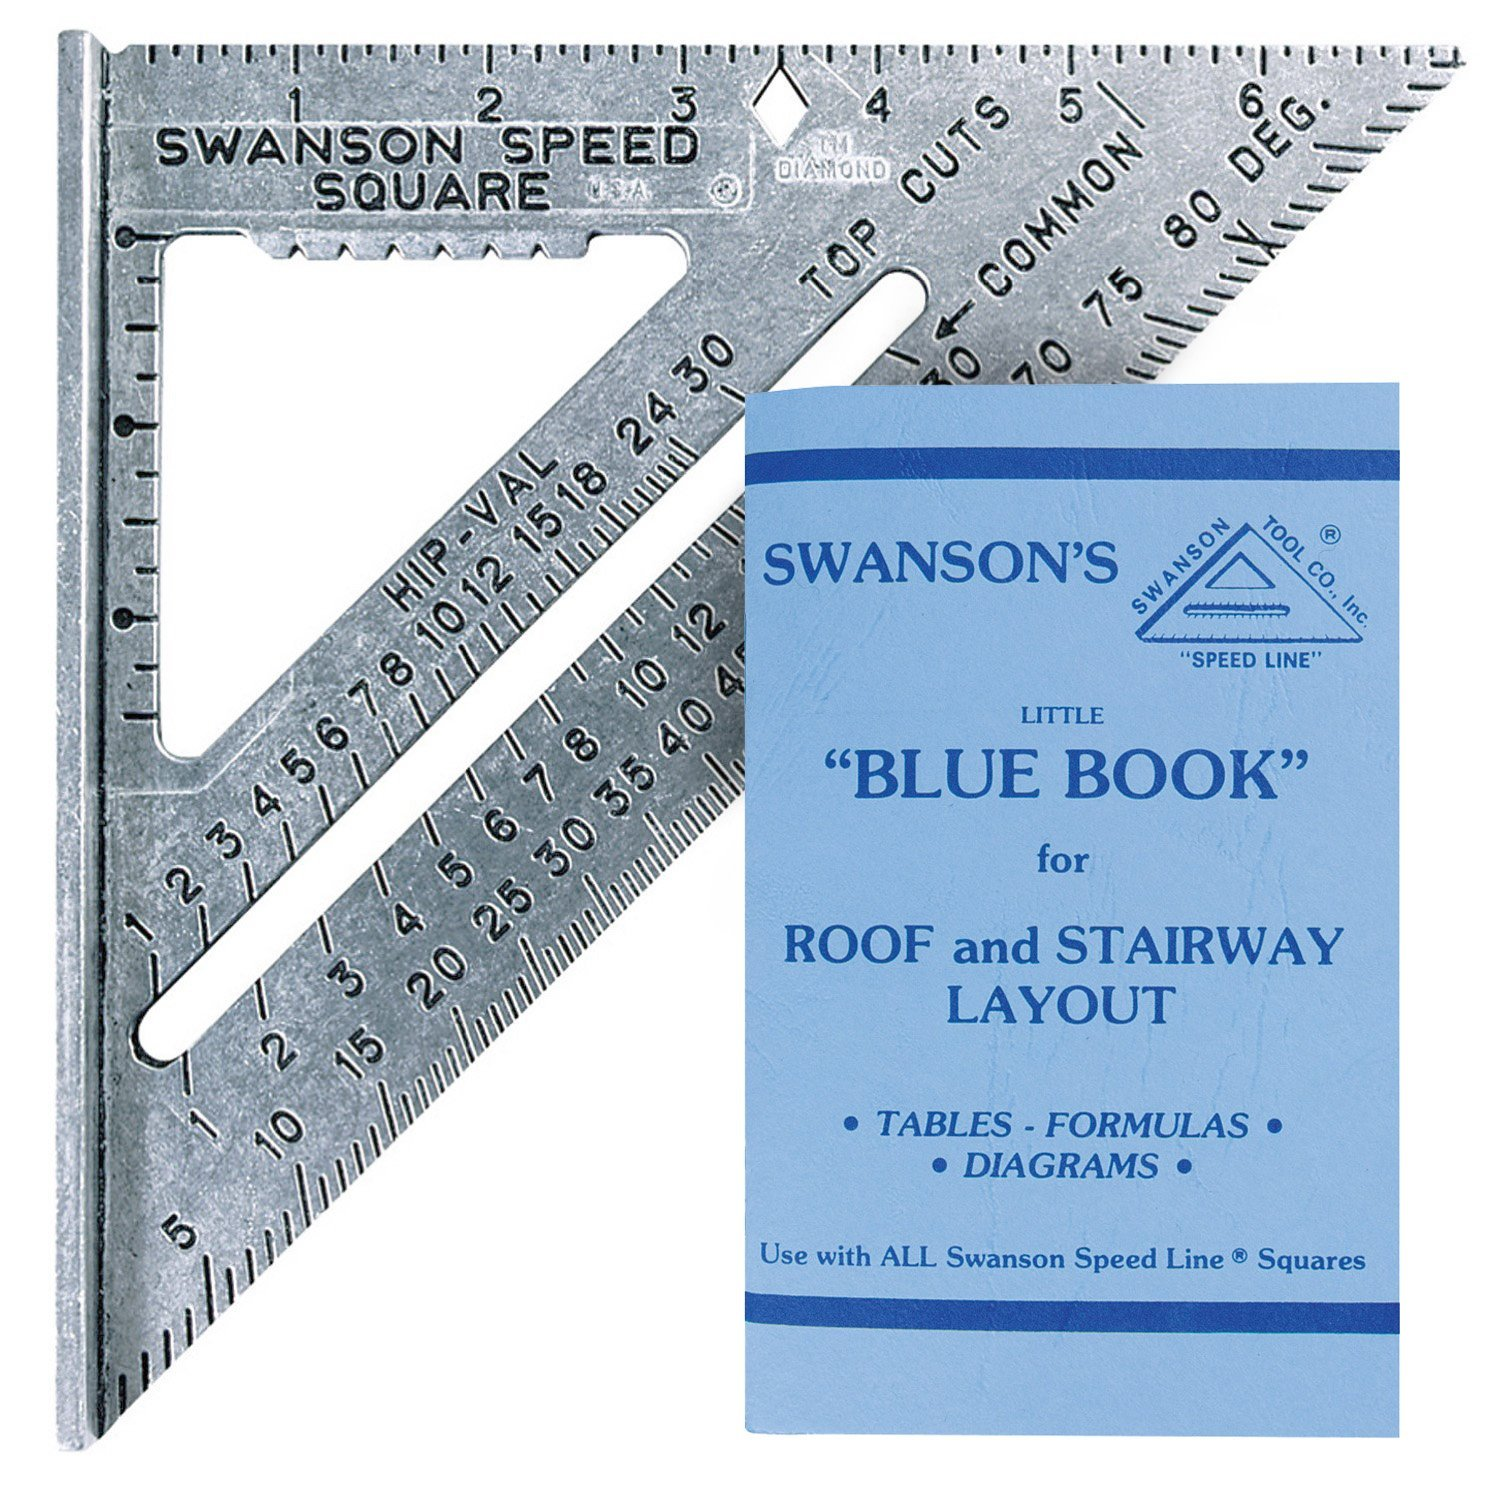 Swanson Tool S0101 7-inch Speed Square Layout Tool with Blue Book ...